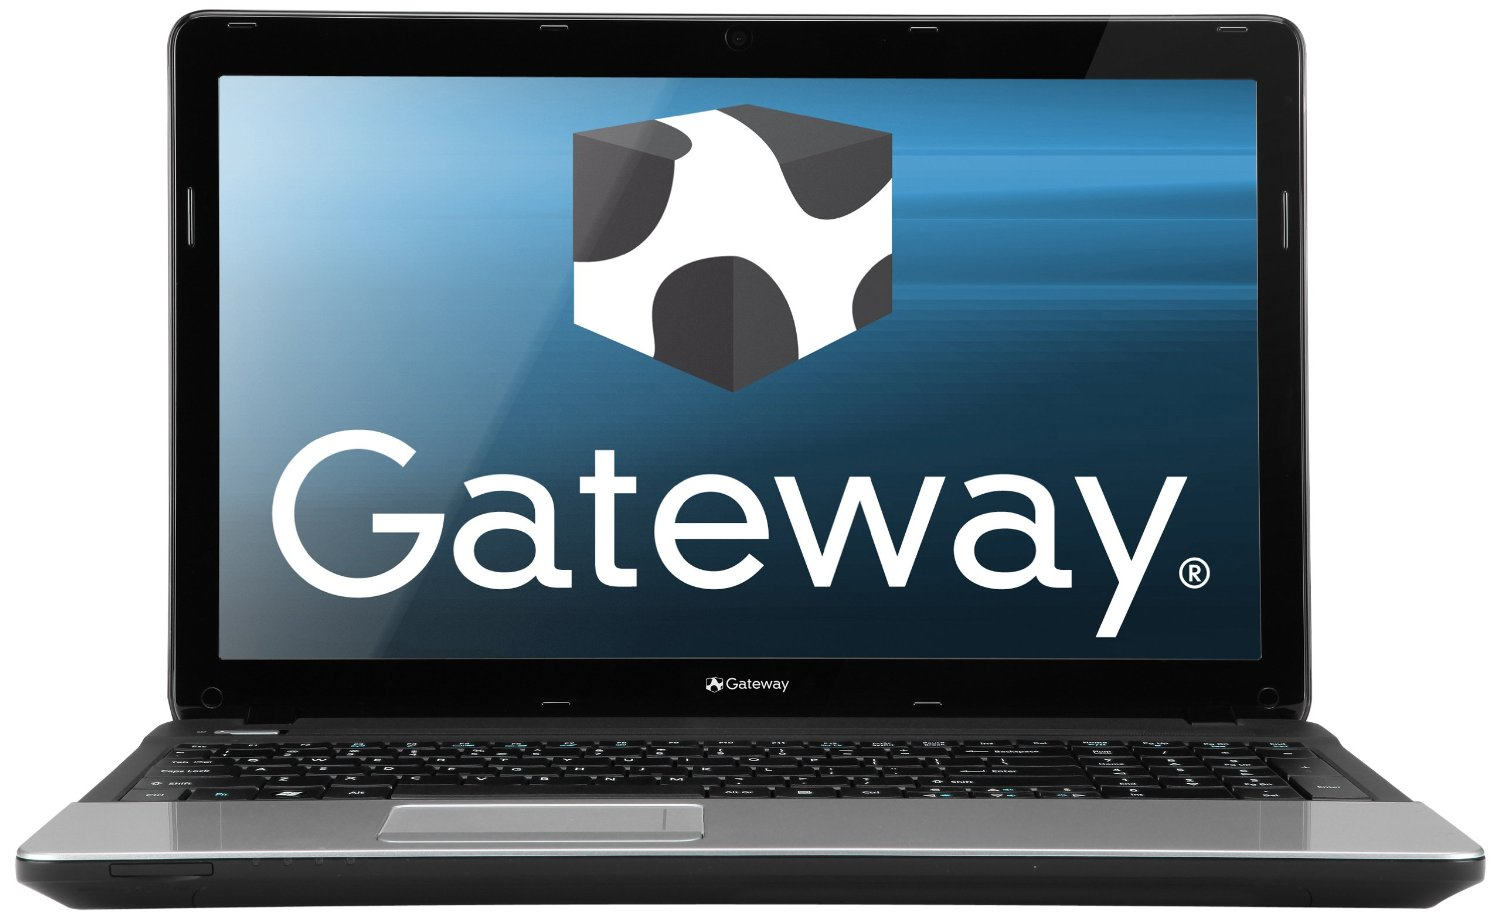 Gateway ML6720 Sigmatel Audio Windows 8 X64